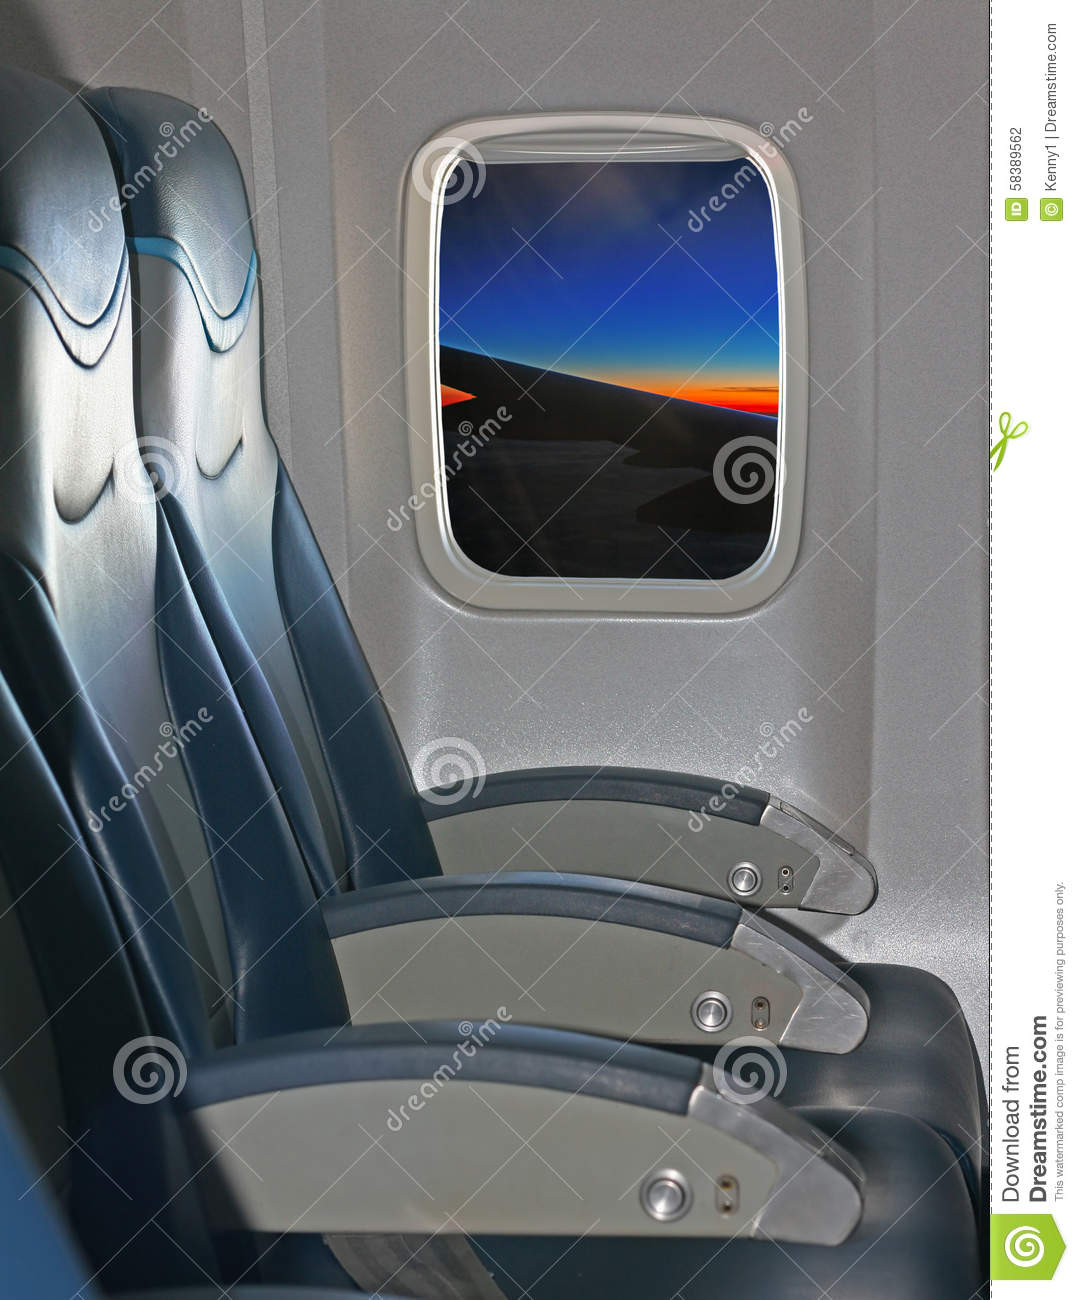 Allocation des places et fen tre l 39 int rieur d 39 un avion for L interieur d un avion